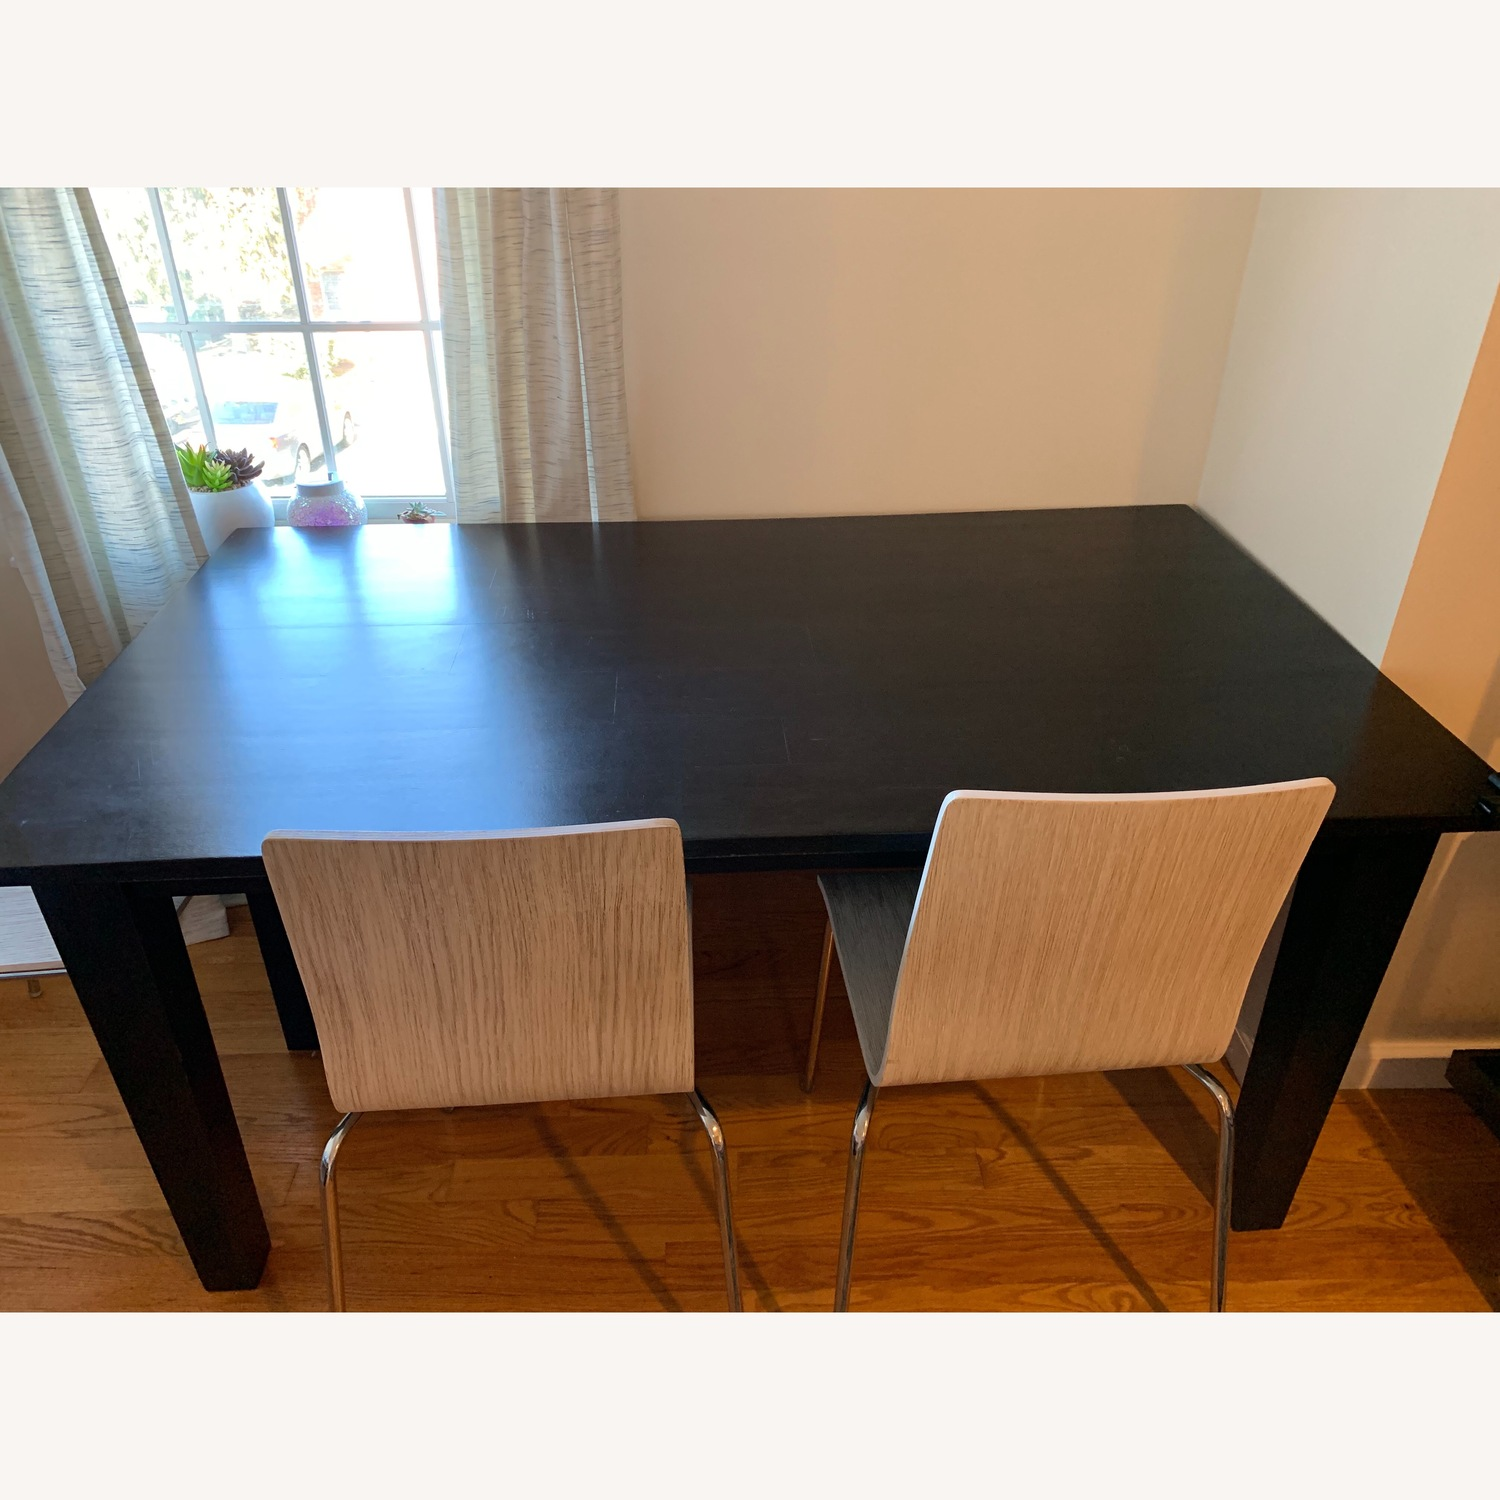 Crate & Barrel Basque Dining Table - image-2